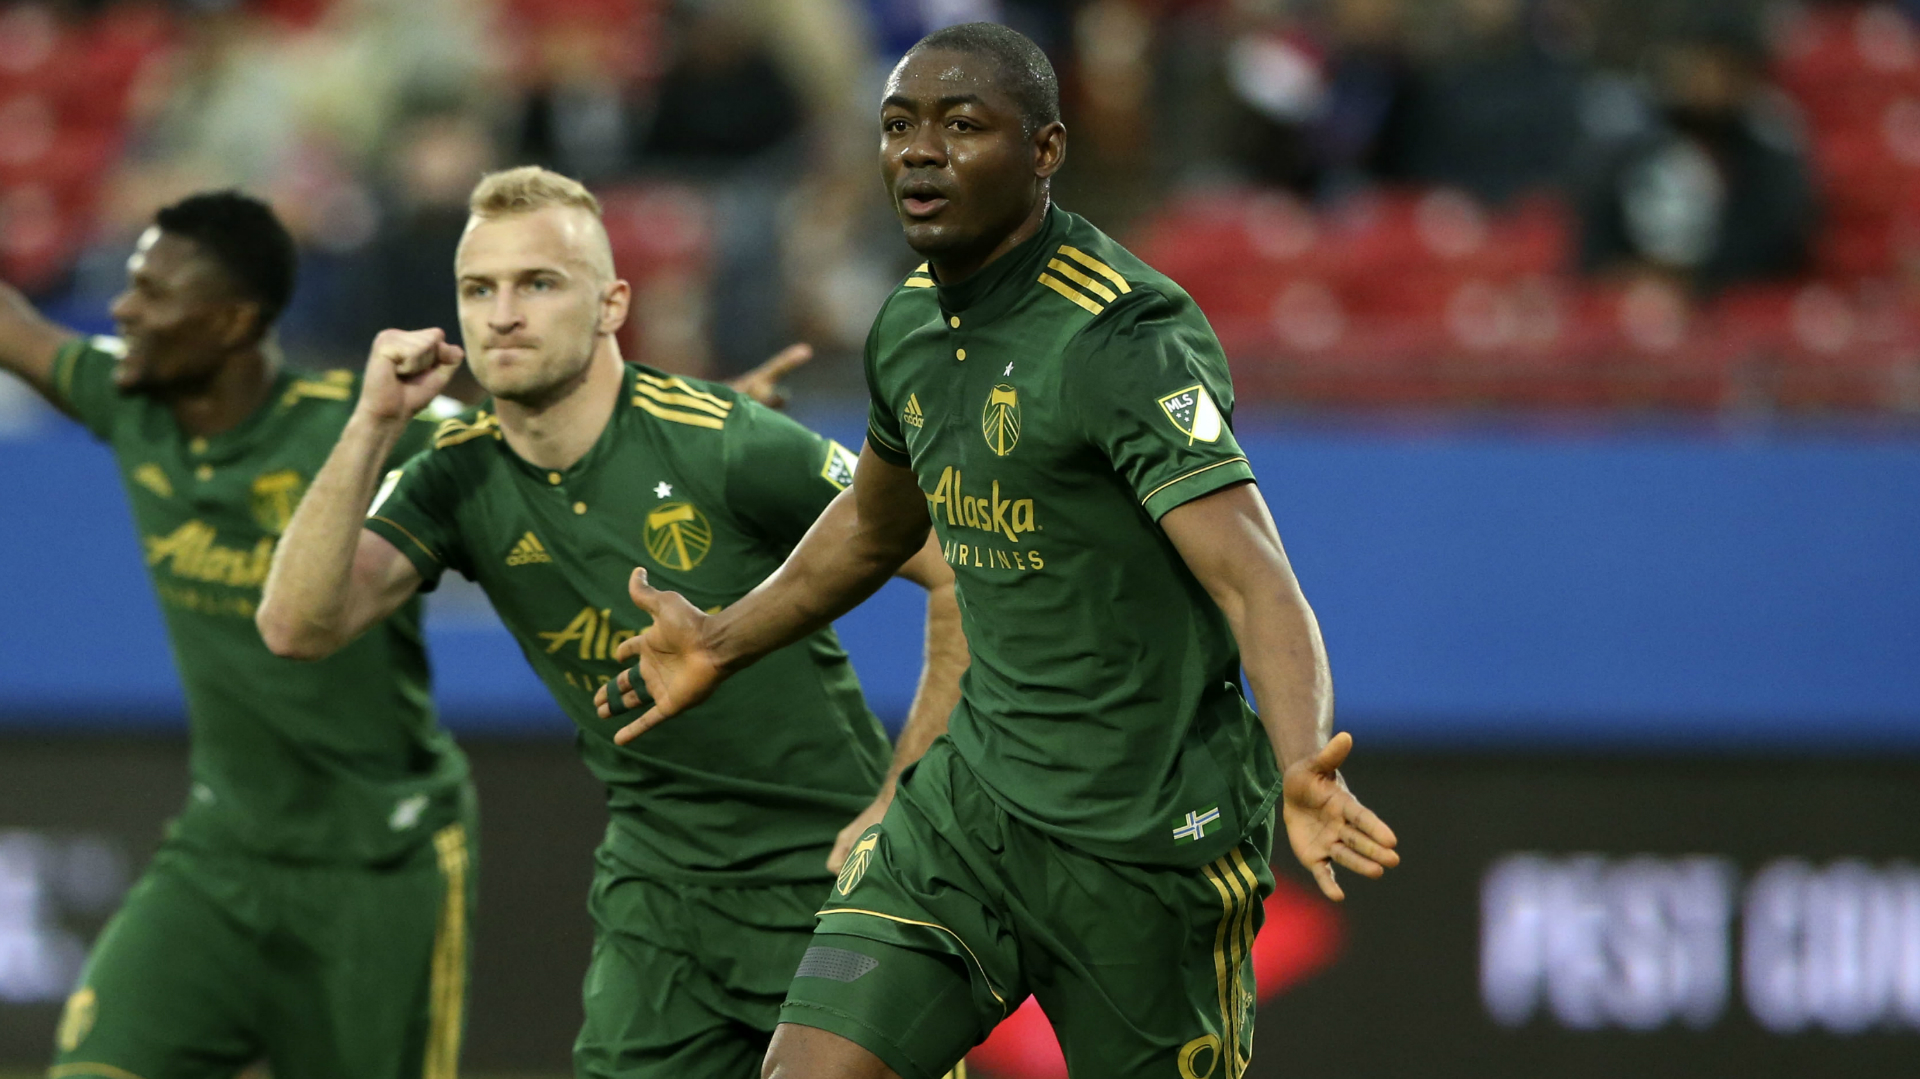 EXTRA TIME: Portland Timbers' Fanendo Adi and wife welcome baby girl